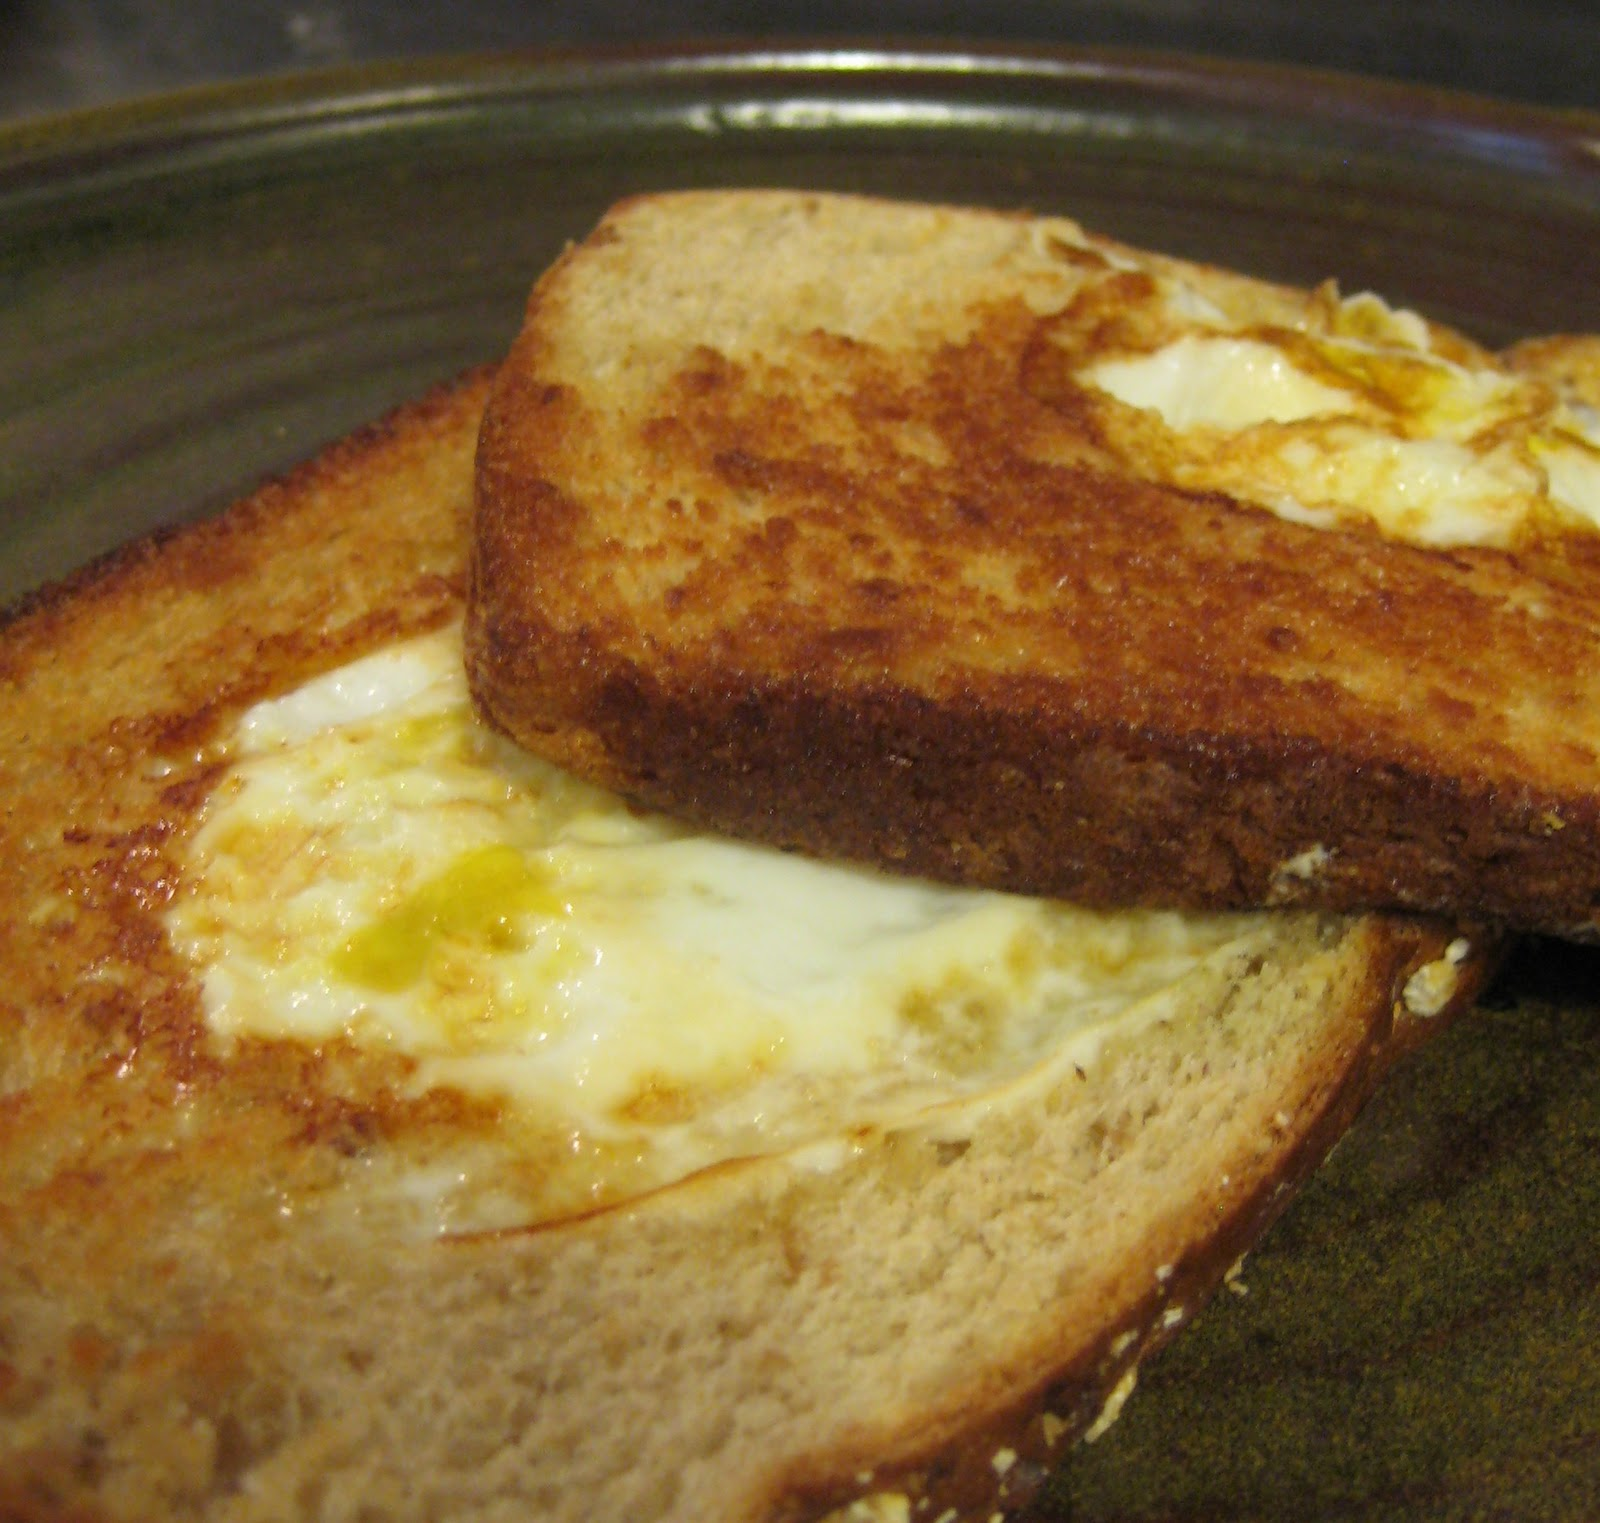 egg+in+the+hole+in+the+toast.JPG